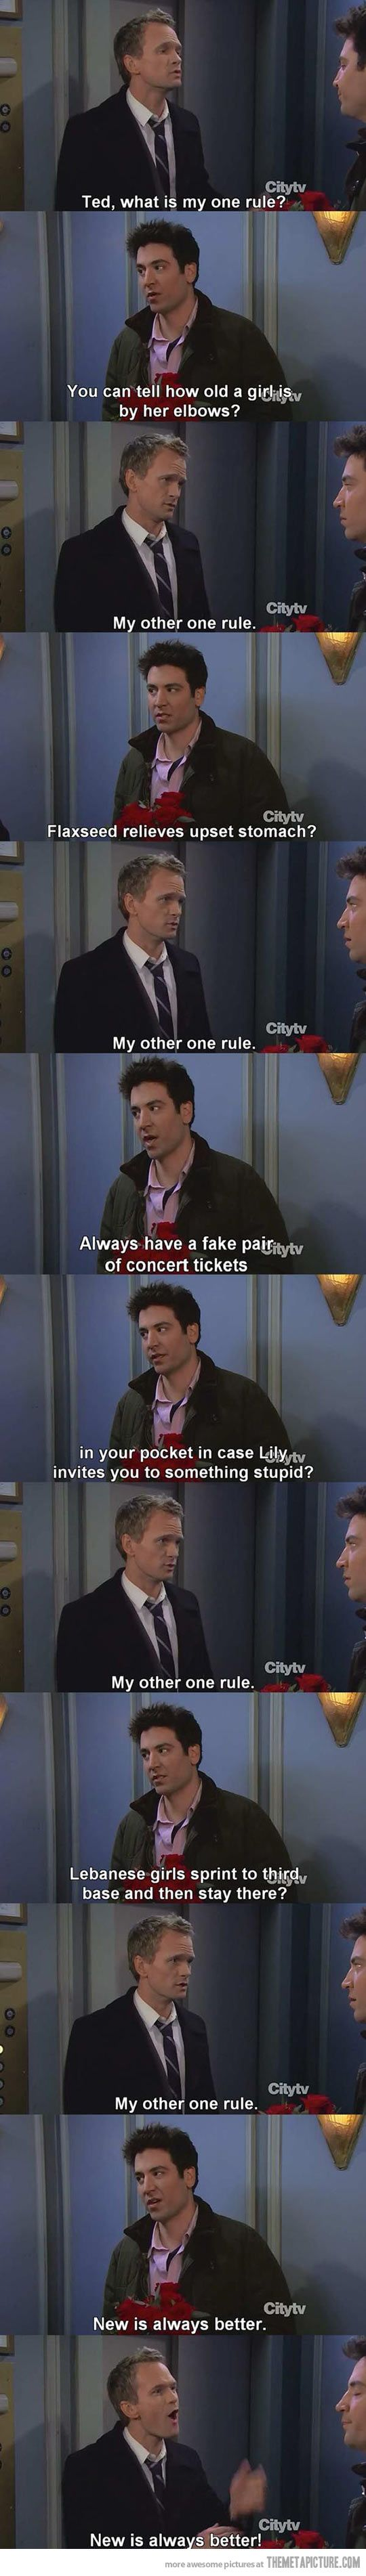 I don't even watch How I Met Your Mother on a regular basis but I find this quite hilarious. I probably should start watching it more often.